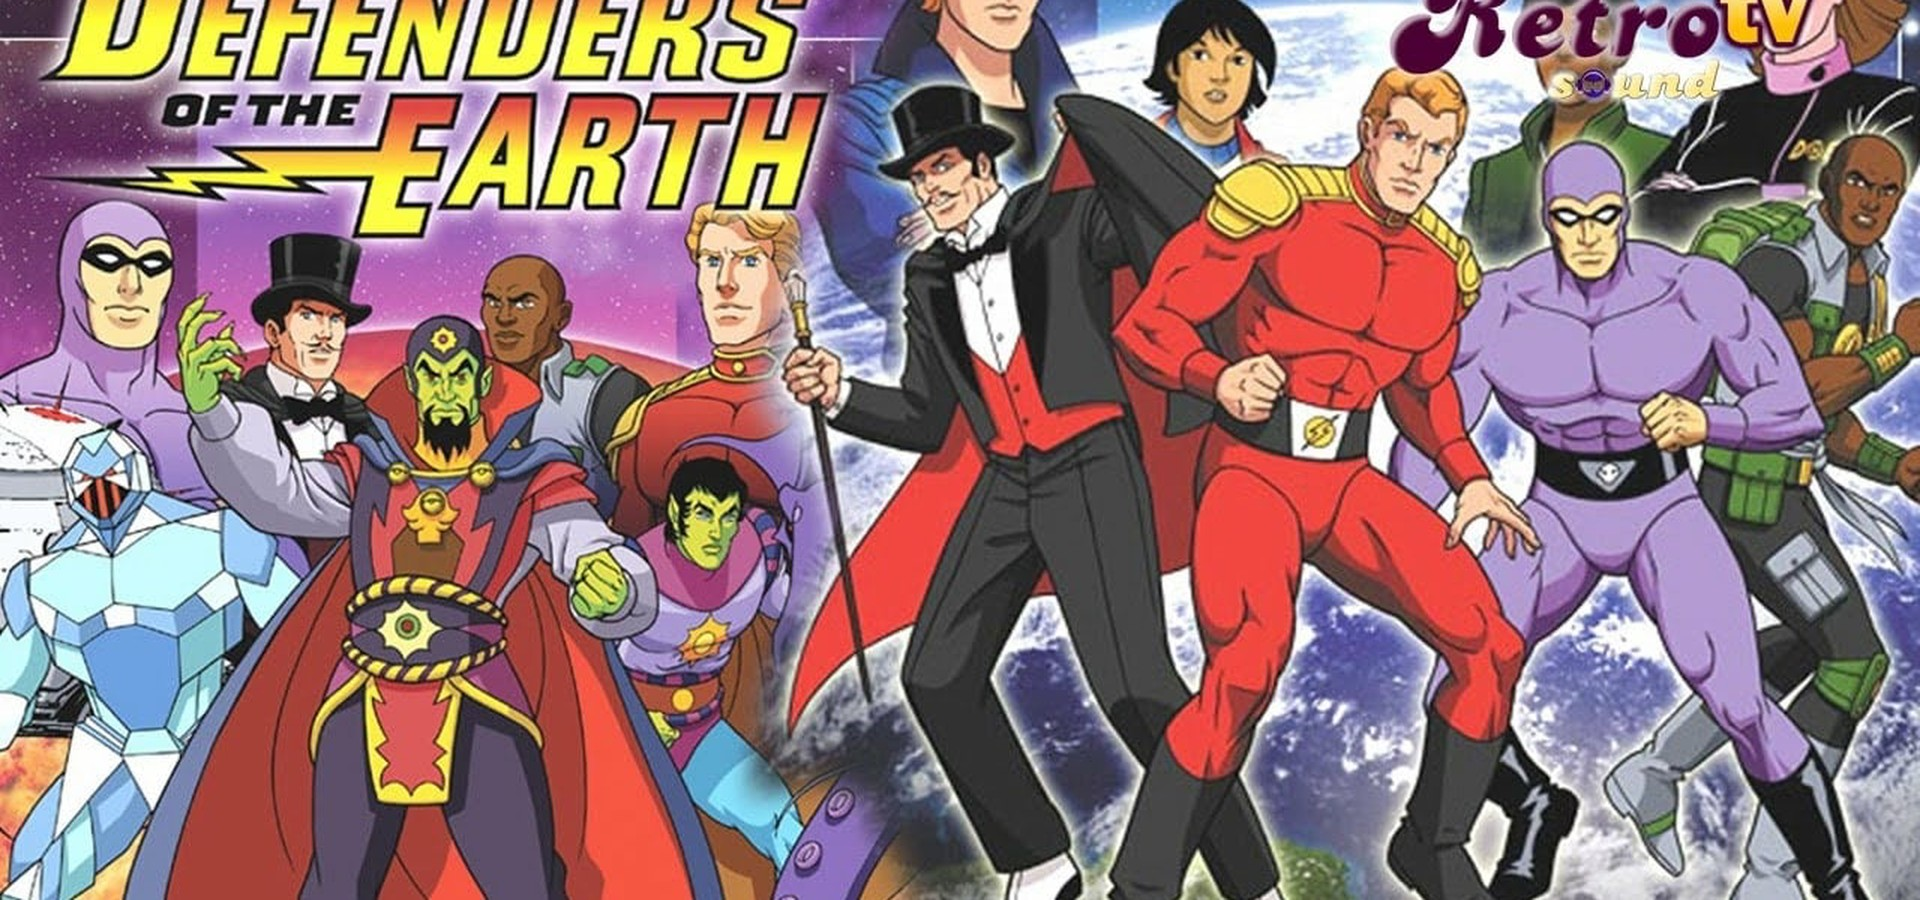 Defenders of the Earth